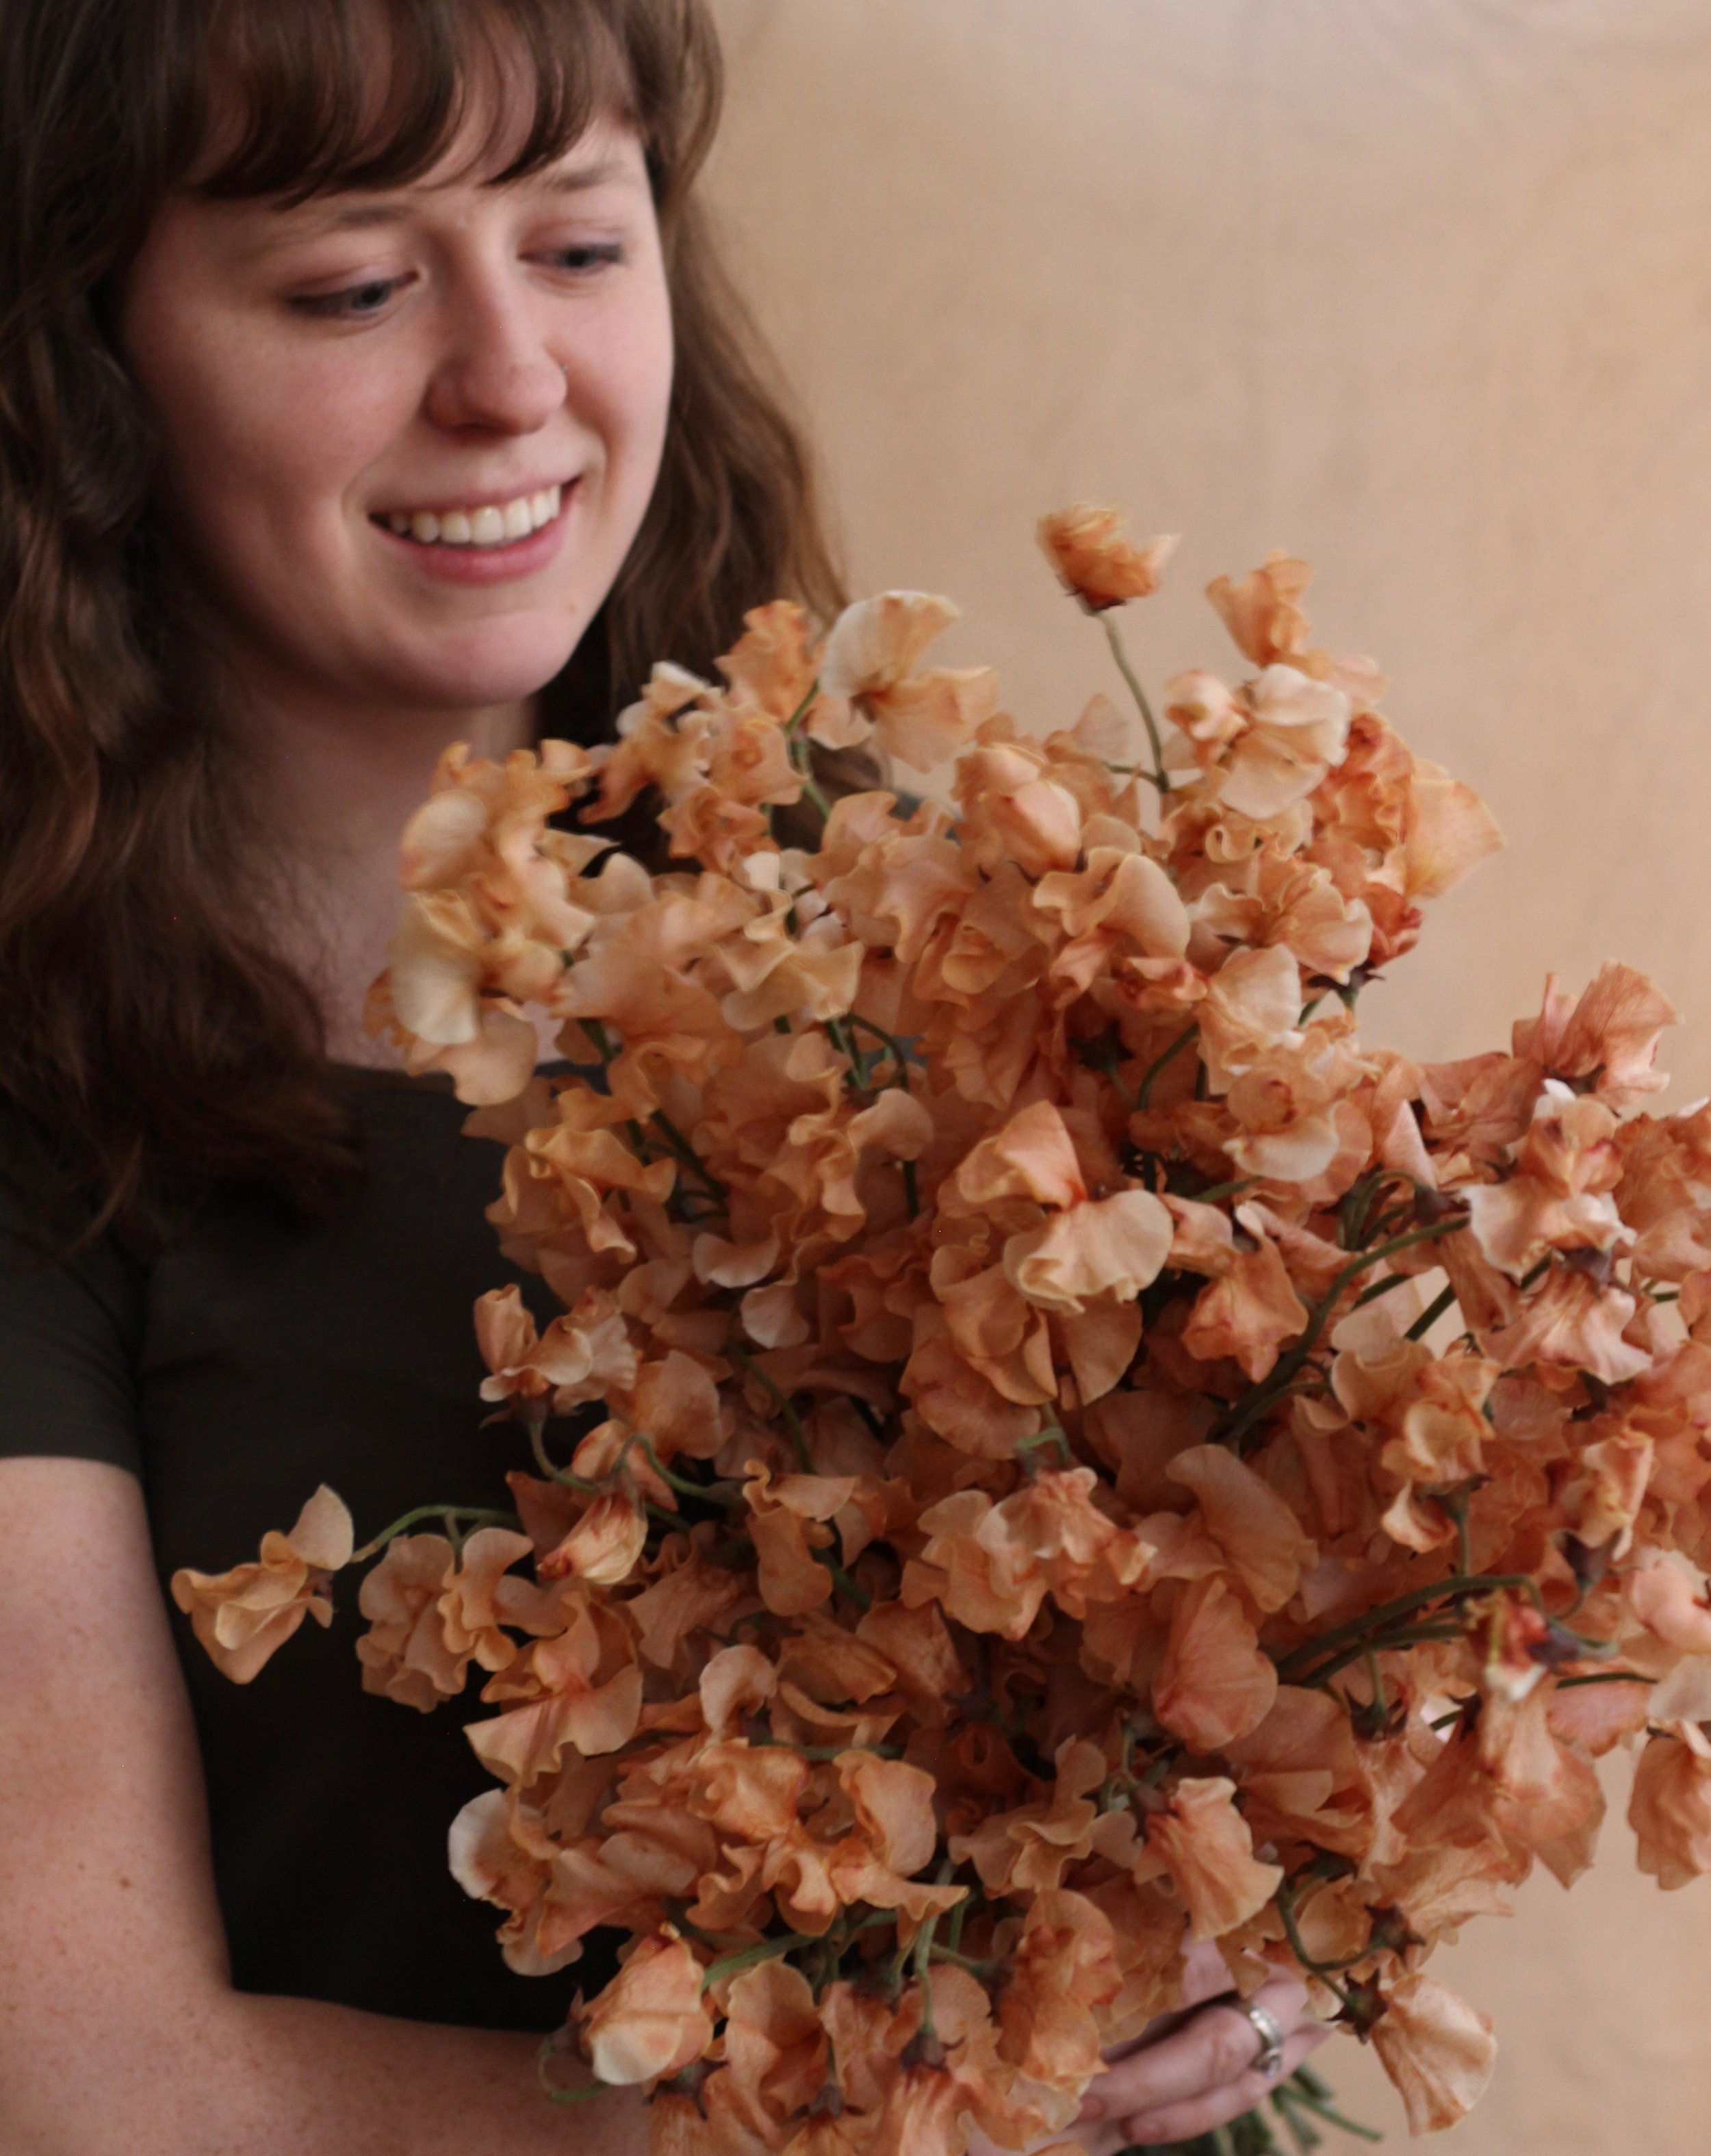 the designer - Hi! I'm Meagan, the heart and hands behind Meadow House. In a city known for its hustle and bustle, I love sharing flowers as a way to inspire pause, reflection, and celebration.With each design or service, I have one goal: to touch the heart of the recipient in a way that shows them they are known, seen, and deeply loved.